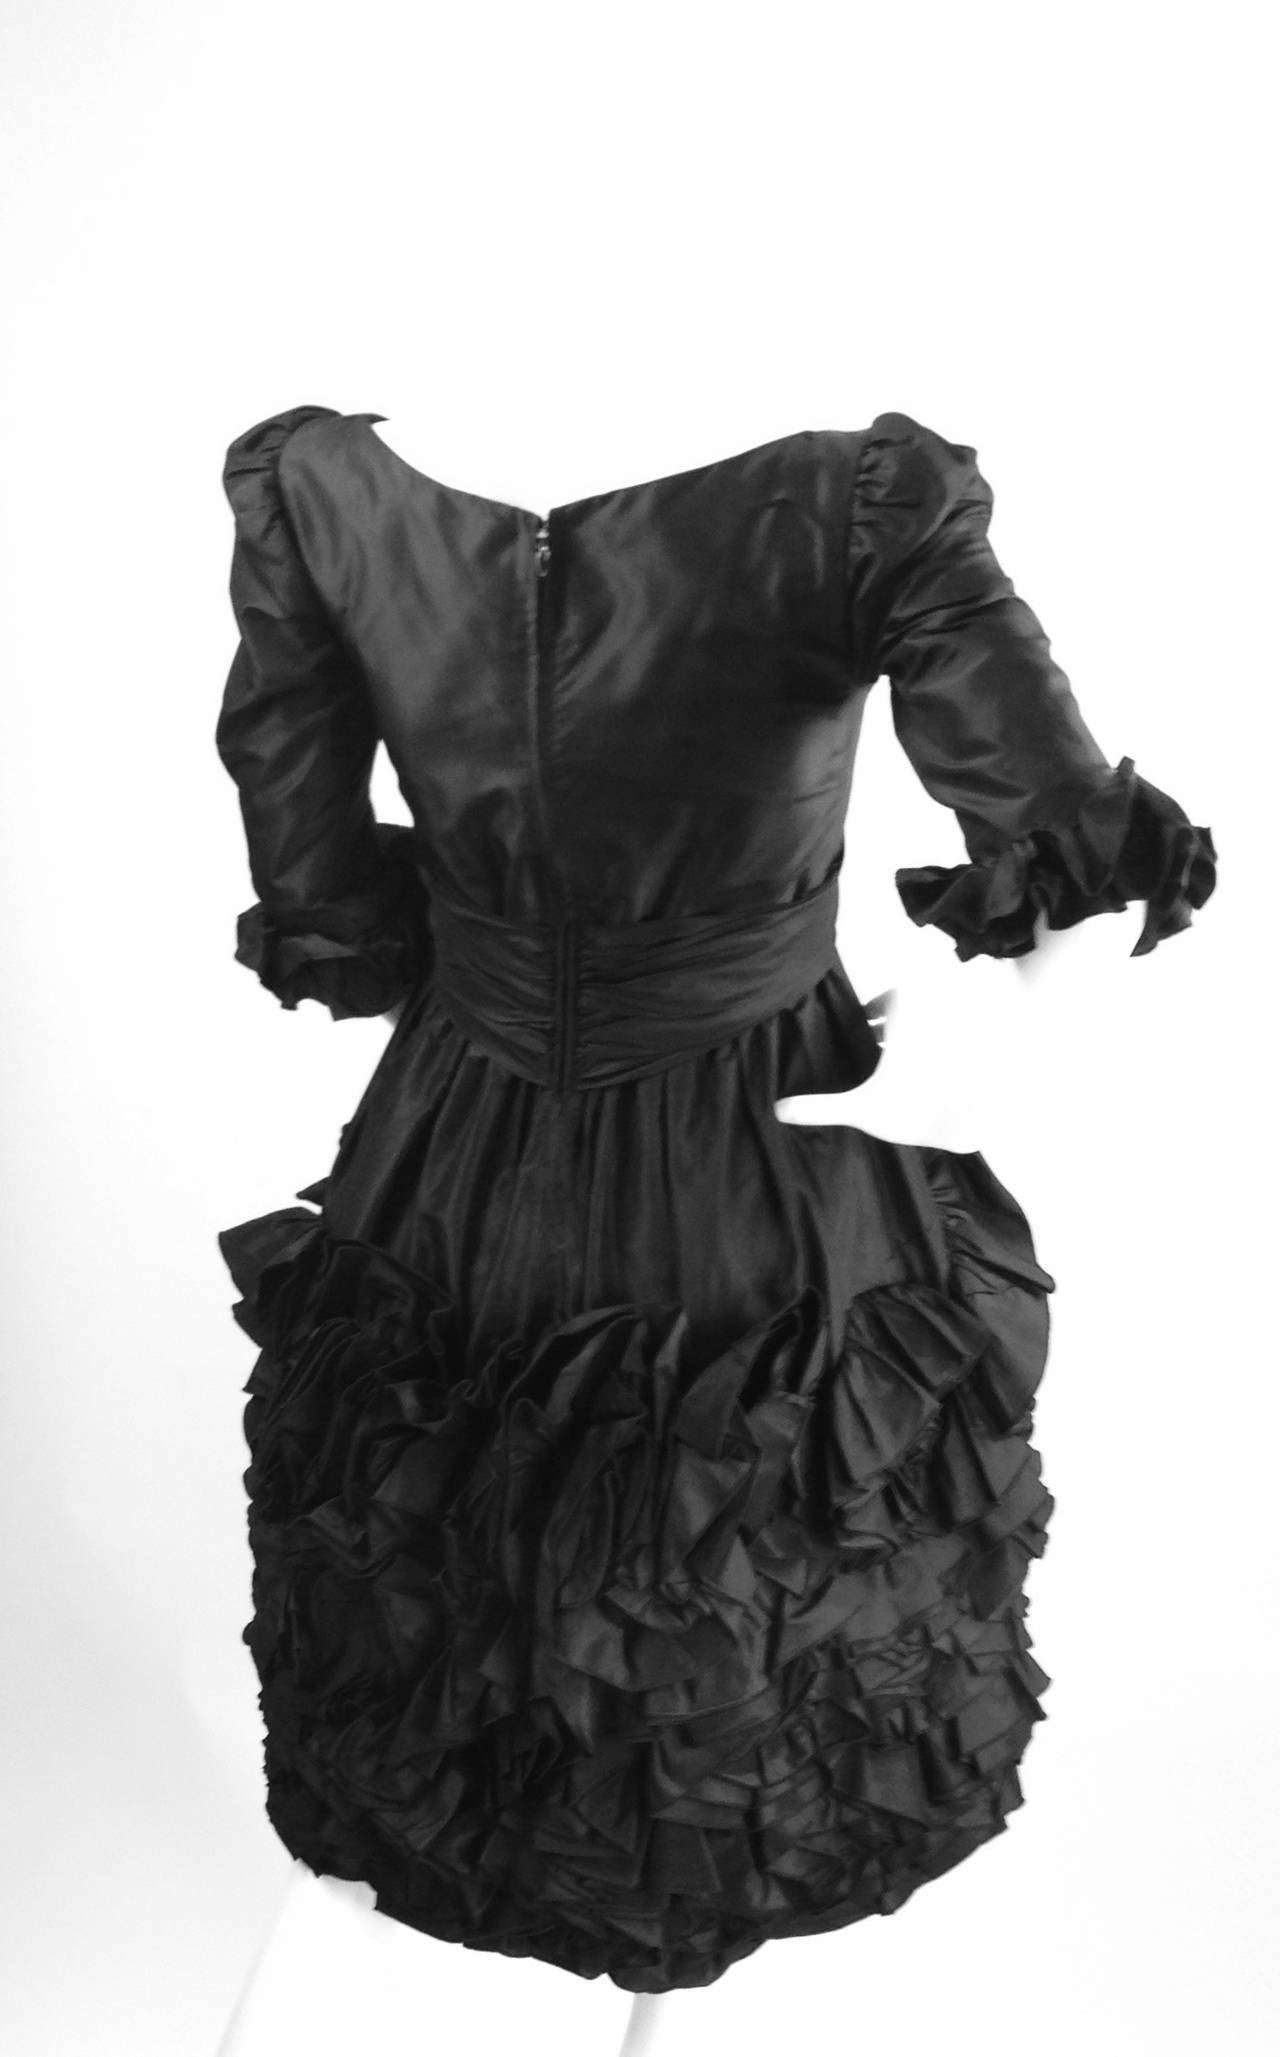 1990s Oscar De La Renta Black Ruffle Dress In Good Condition For Sale In Houston, TX